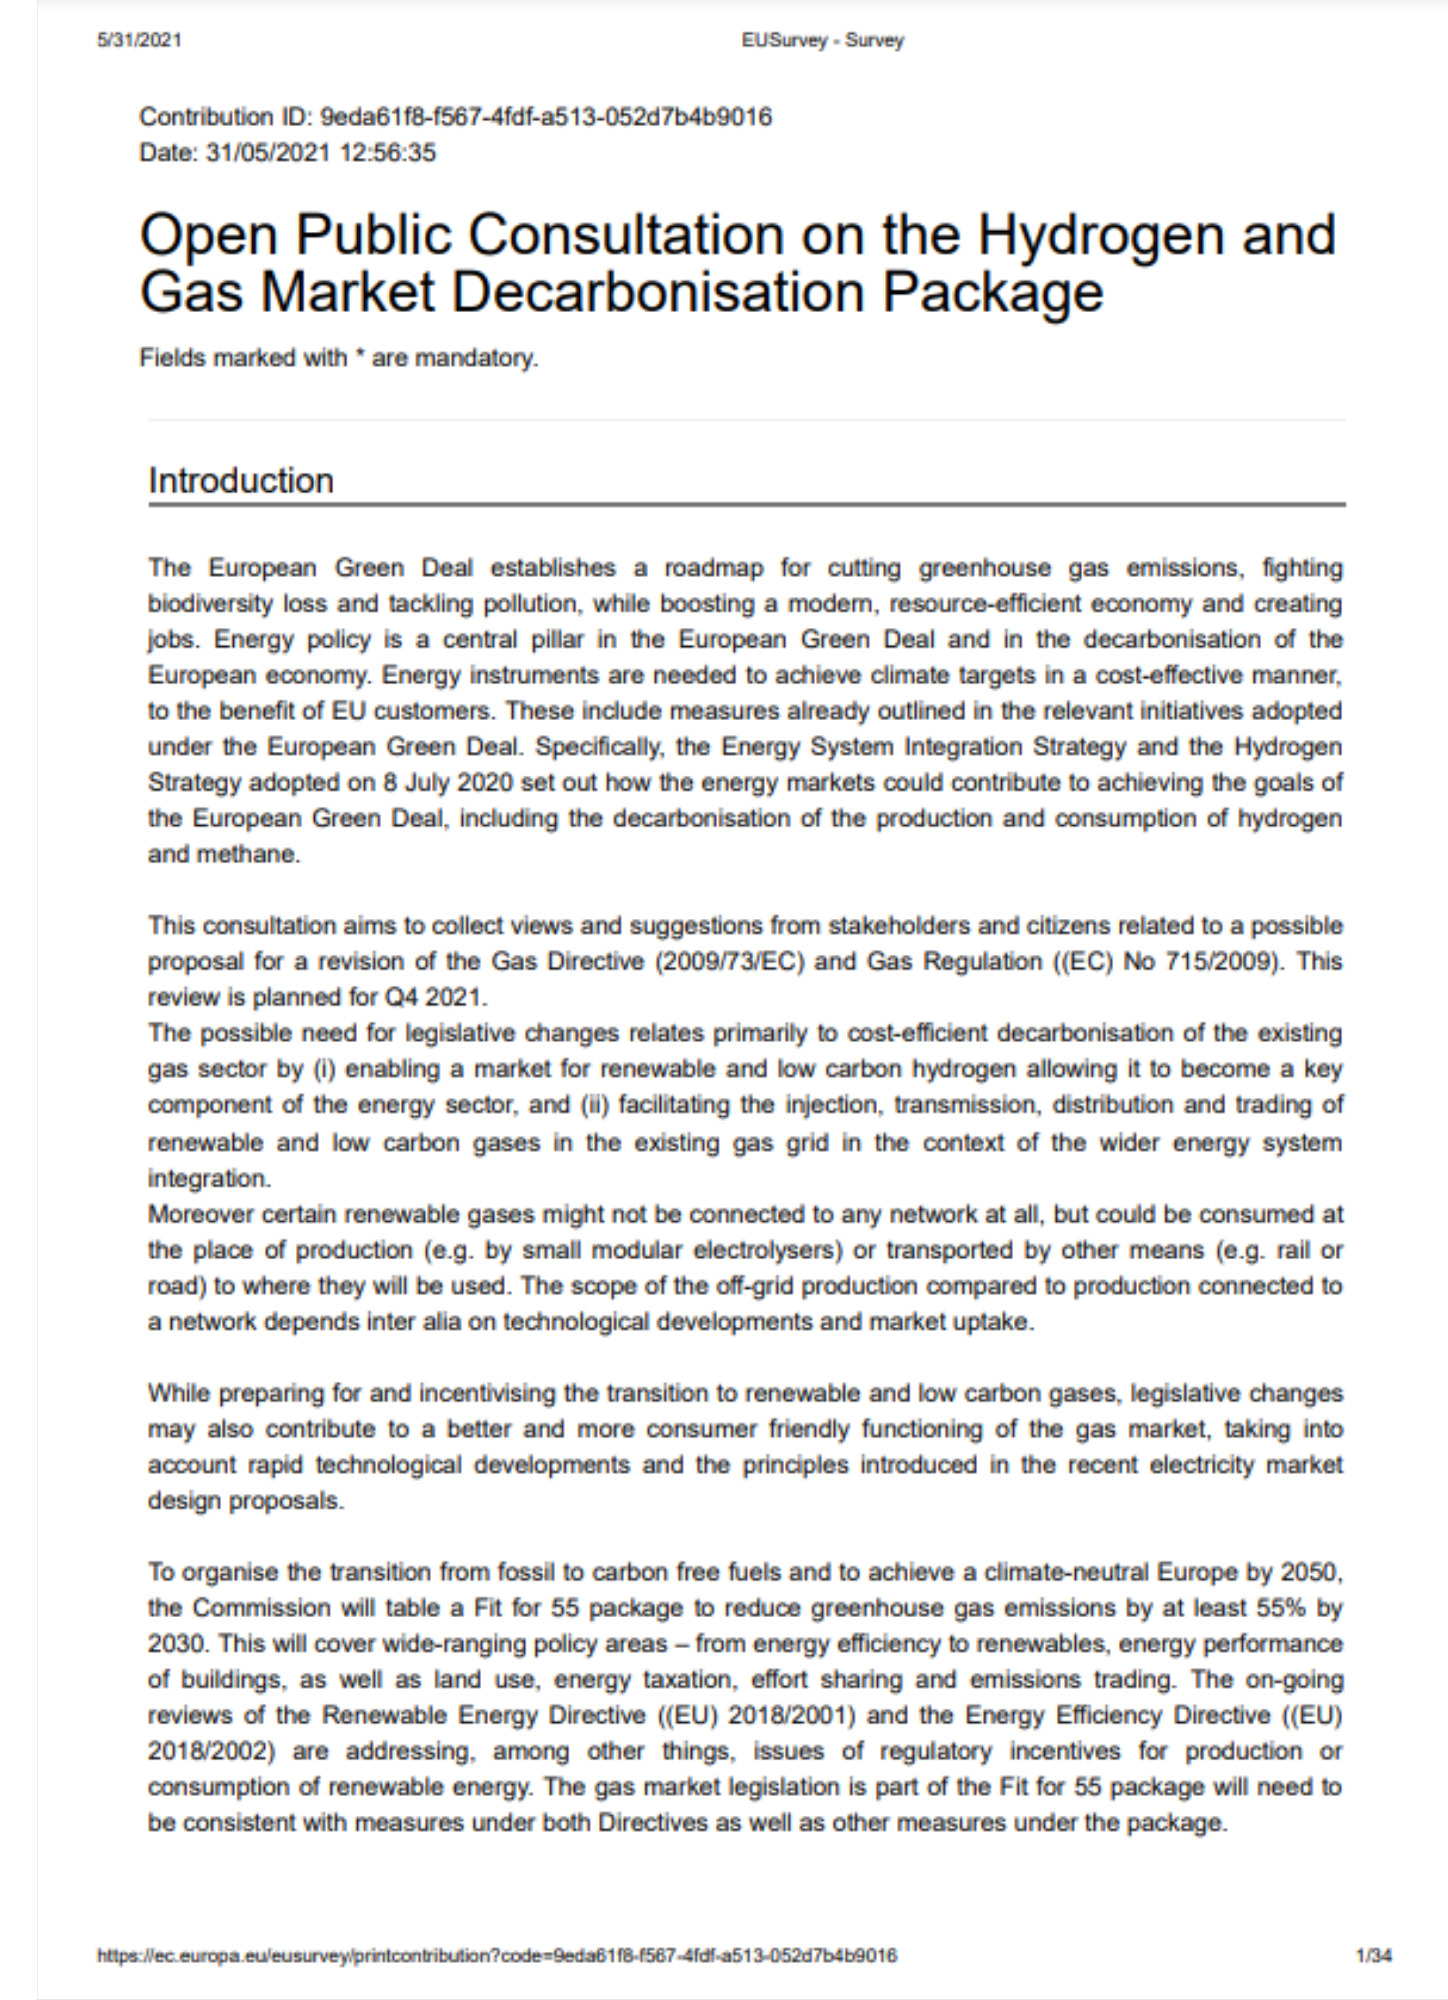 EurEau reaction to the public consultation on the Hydrogen and Gas Market Decarbonisation Package